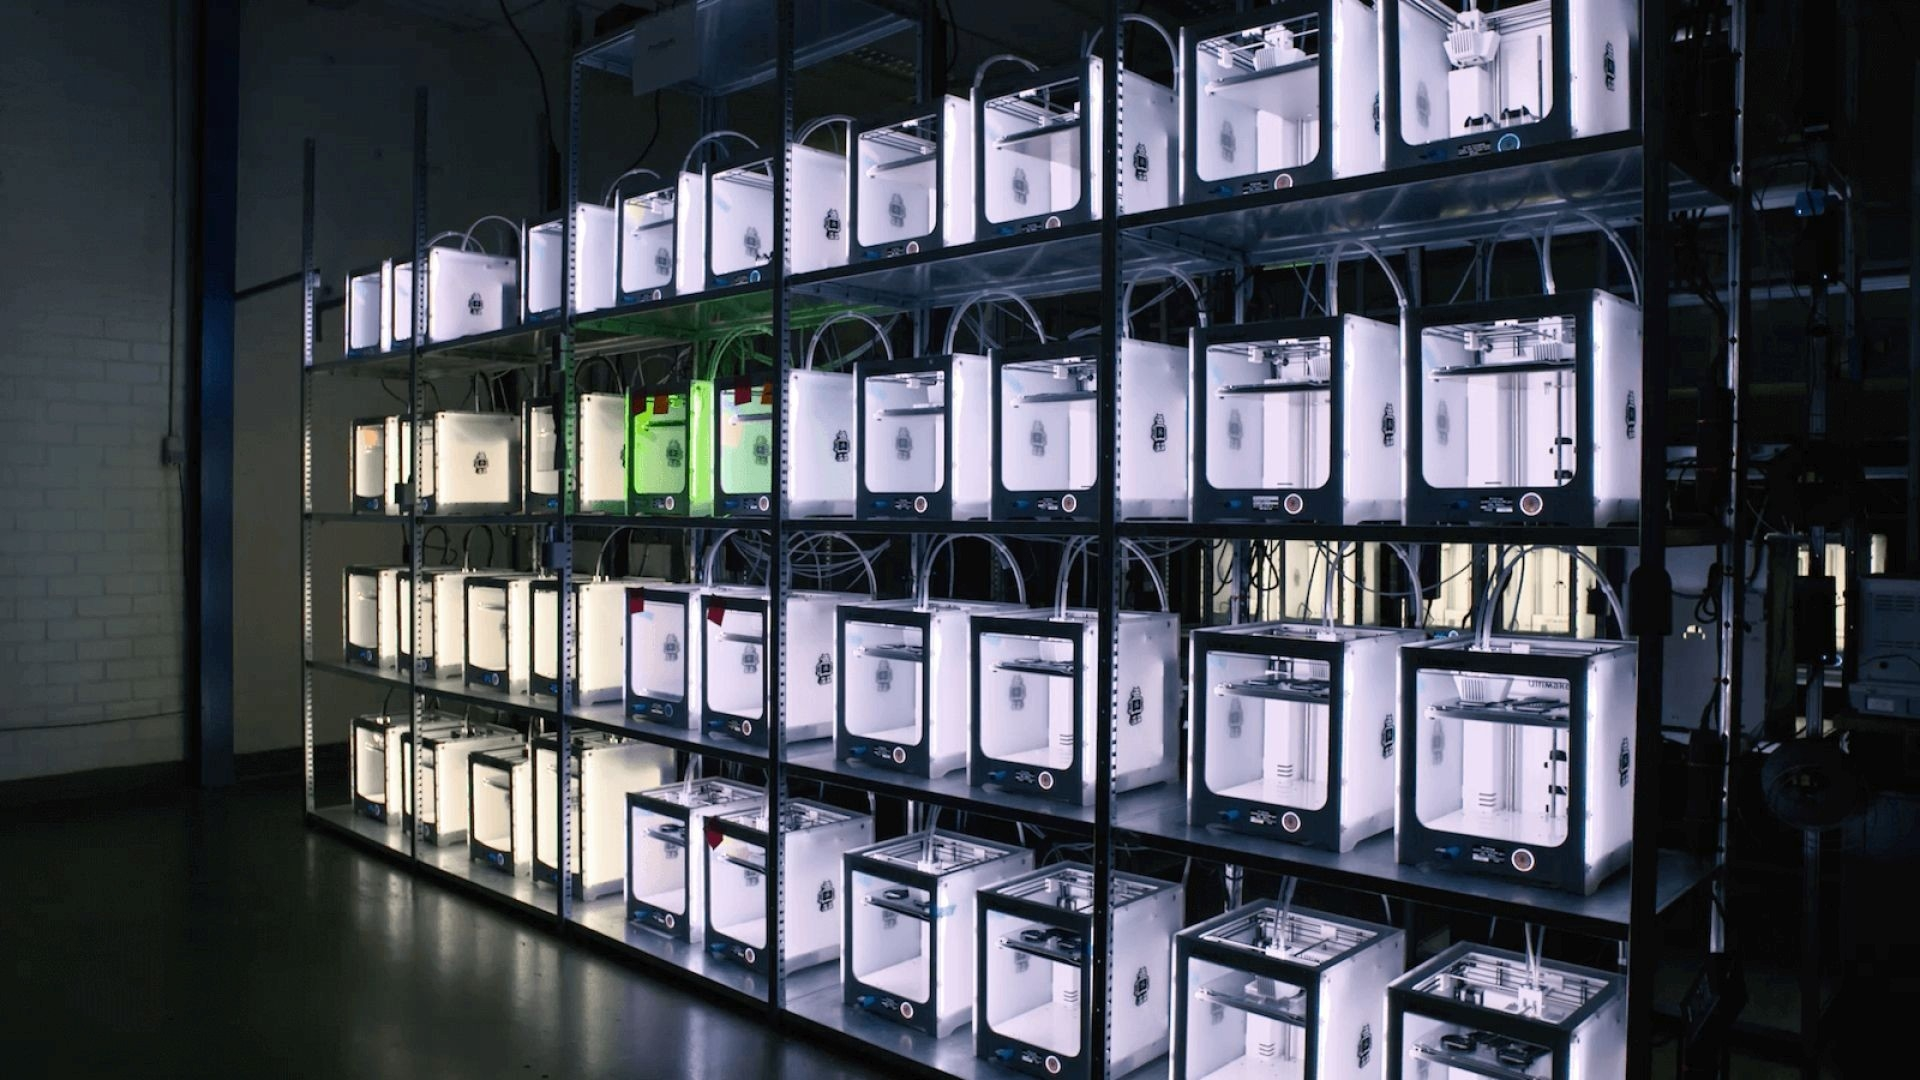 Ultimaker 3 Printer Farm